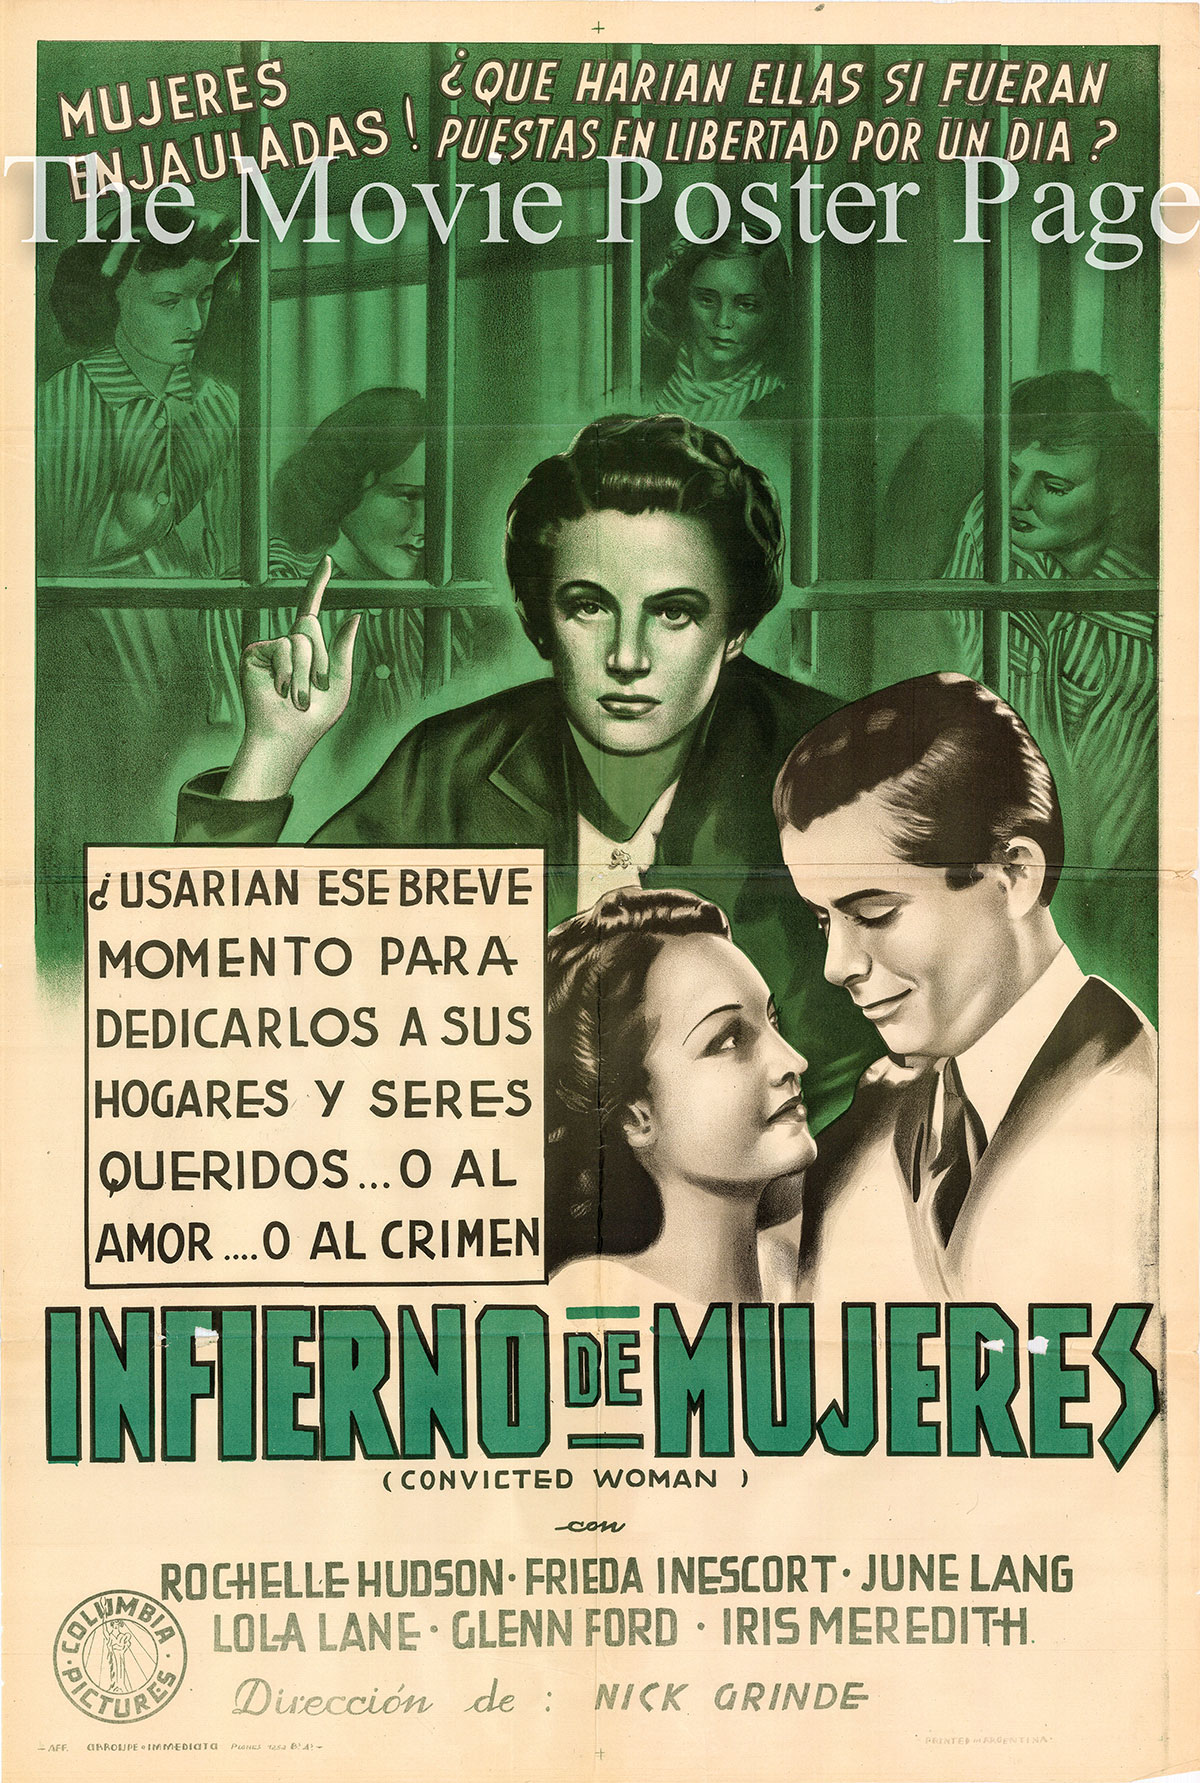 Pictured is an Argentine duotone one-sheet poster for the 1940 Nick Grinde film Convicted Woman starring Rochelle Hudson.